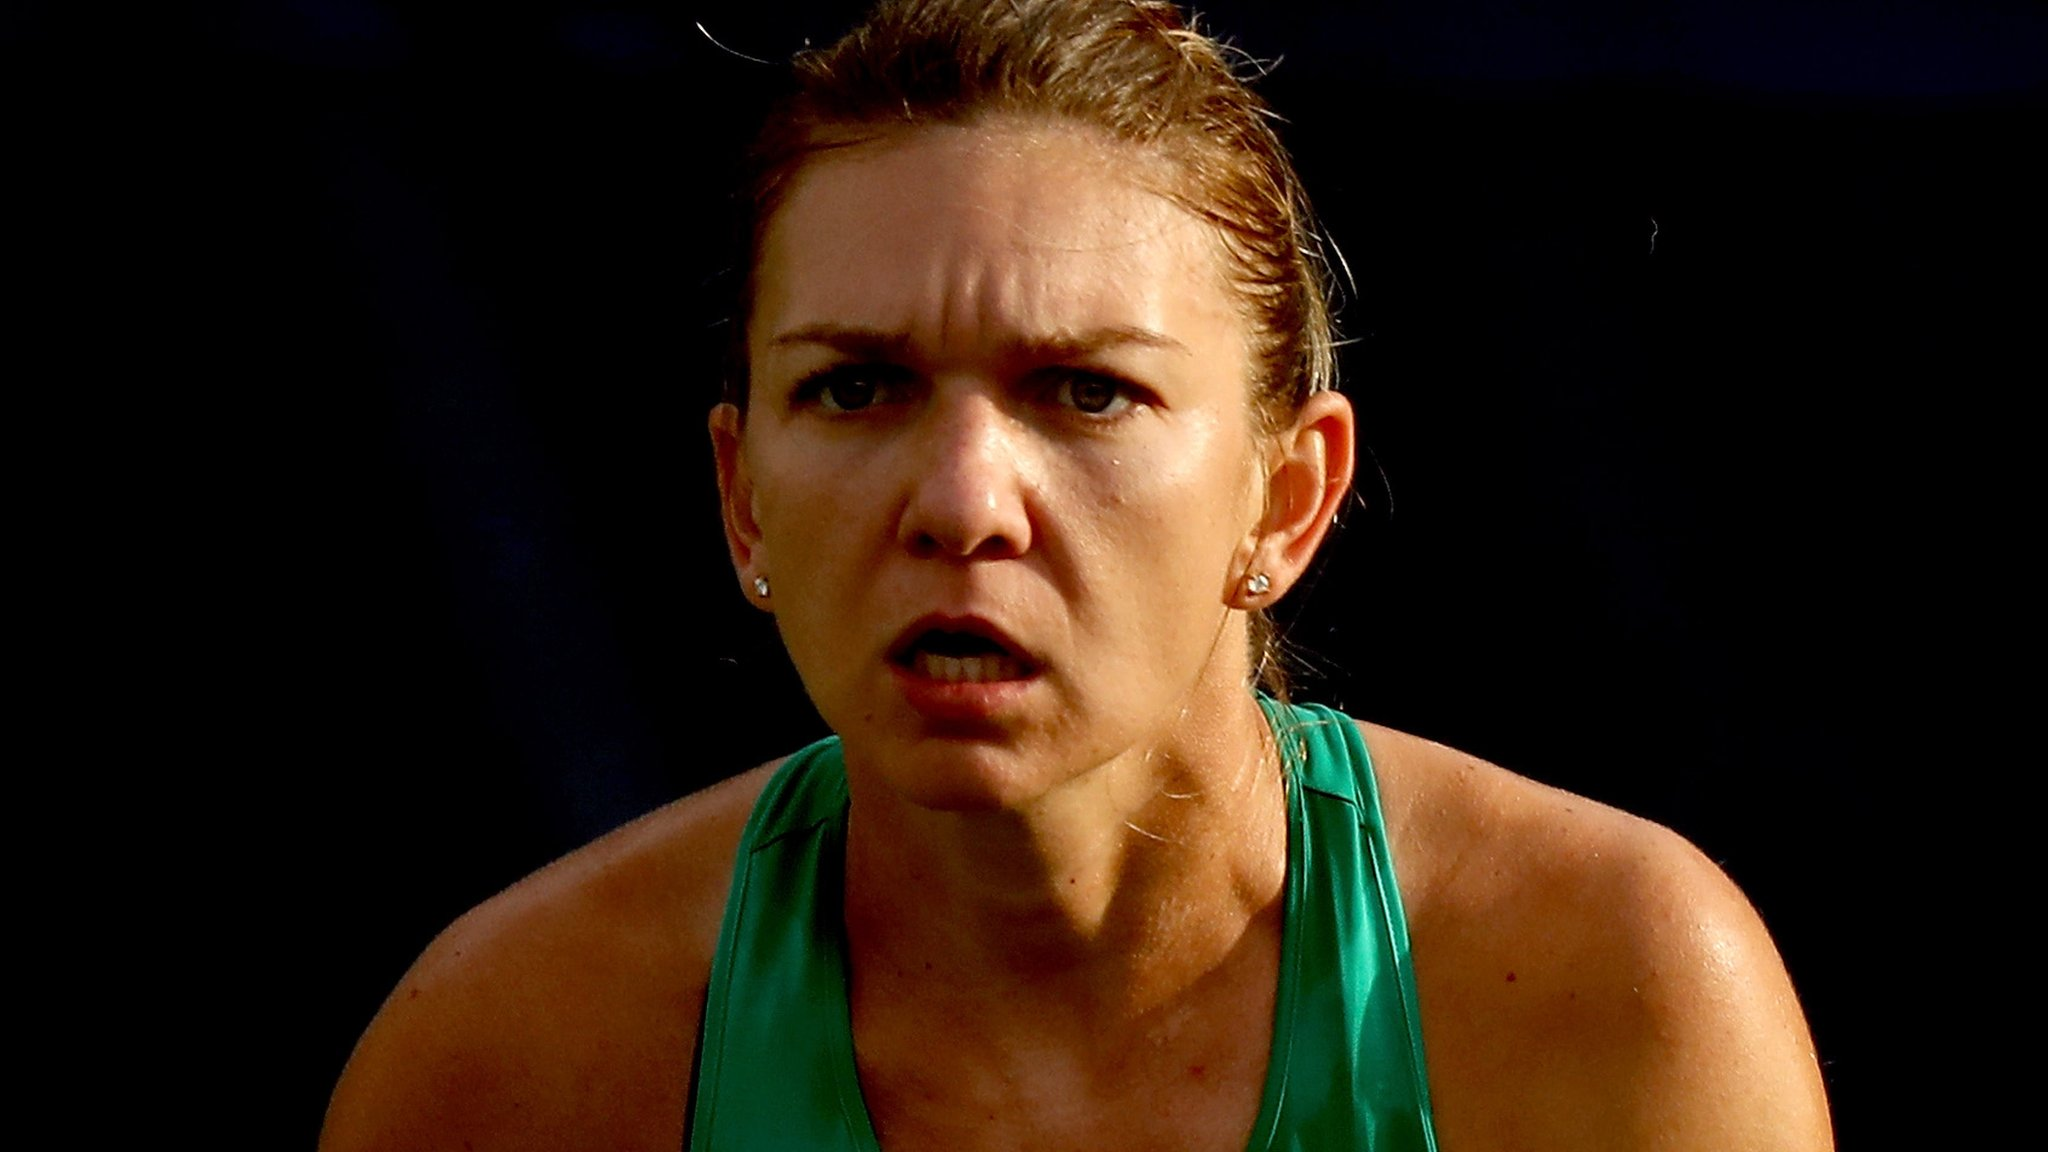 Cincinnati Masters: Simona Halep to play Kiki Bertens in final